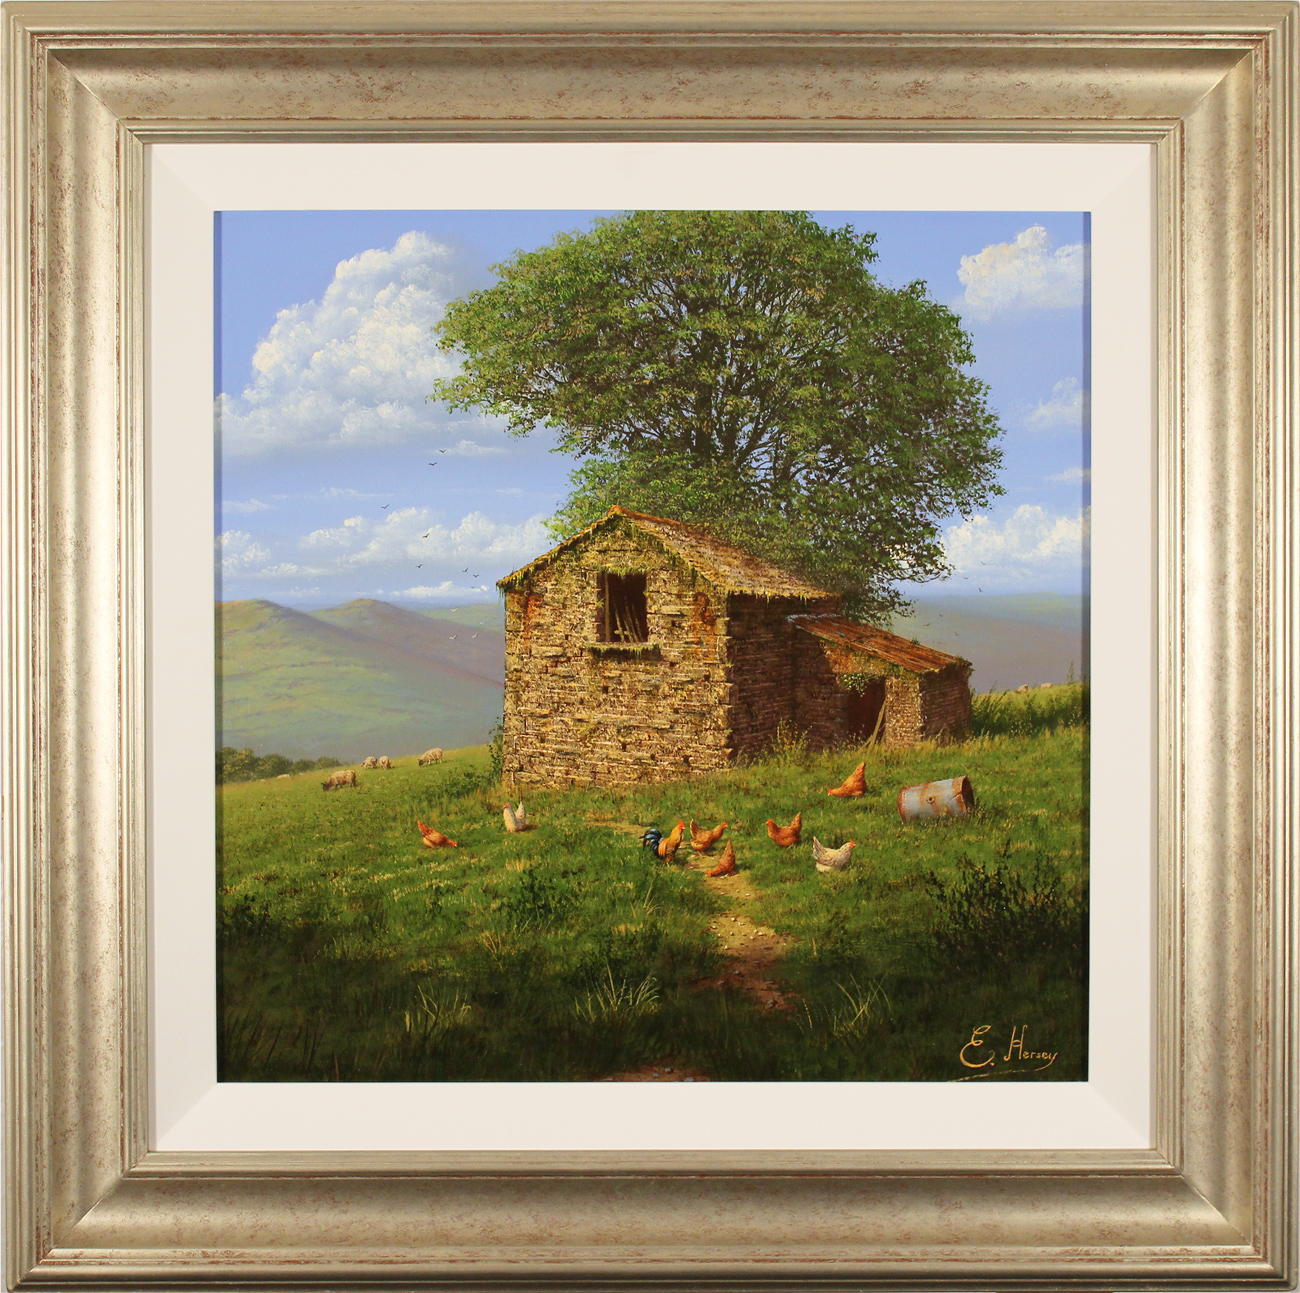 Edward Hersey, Original oil painting on canvas, The Lone Barn, Yorkshire Dales Click to enlarge